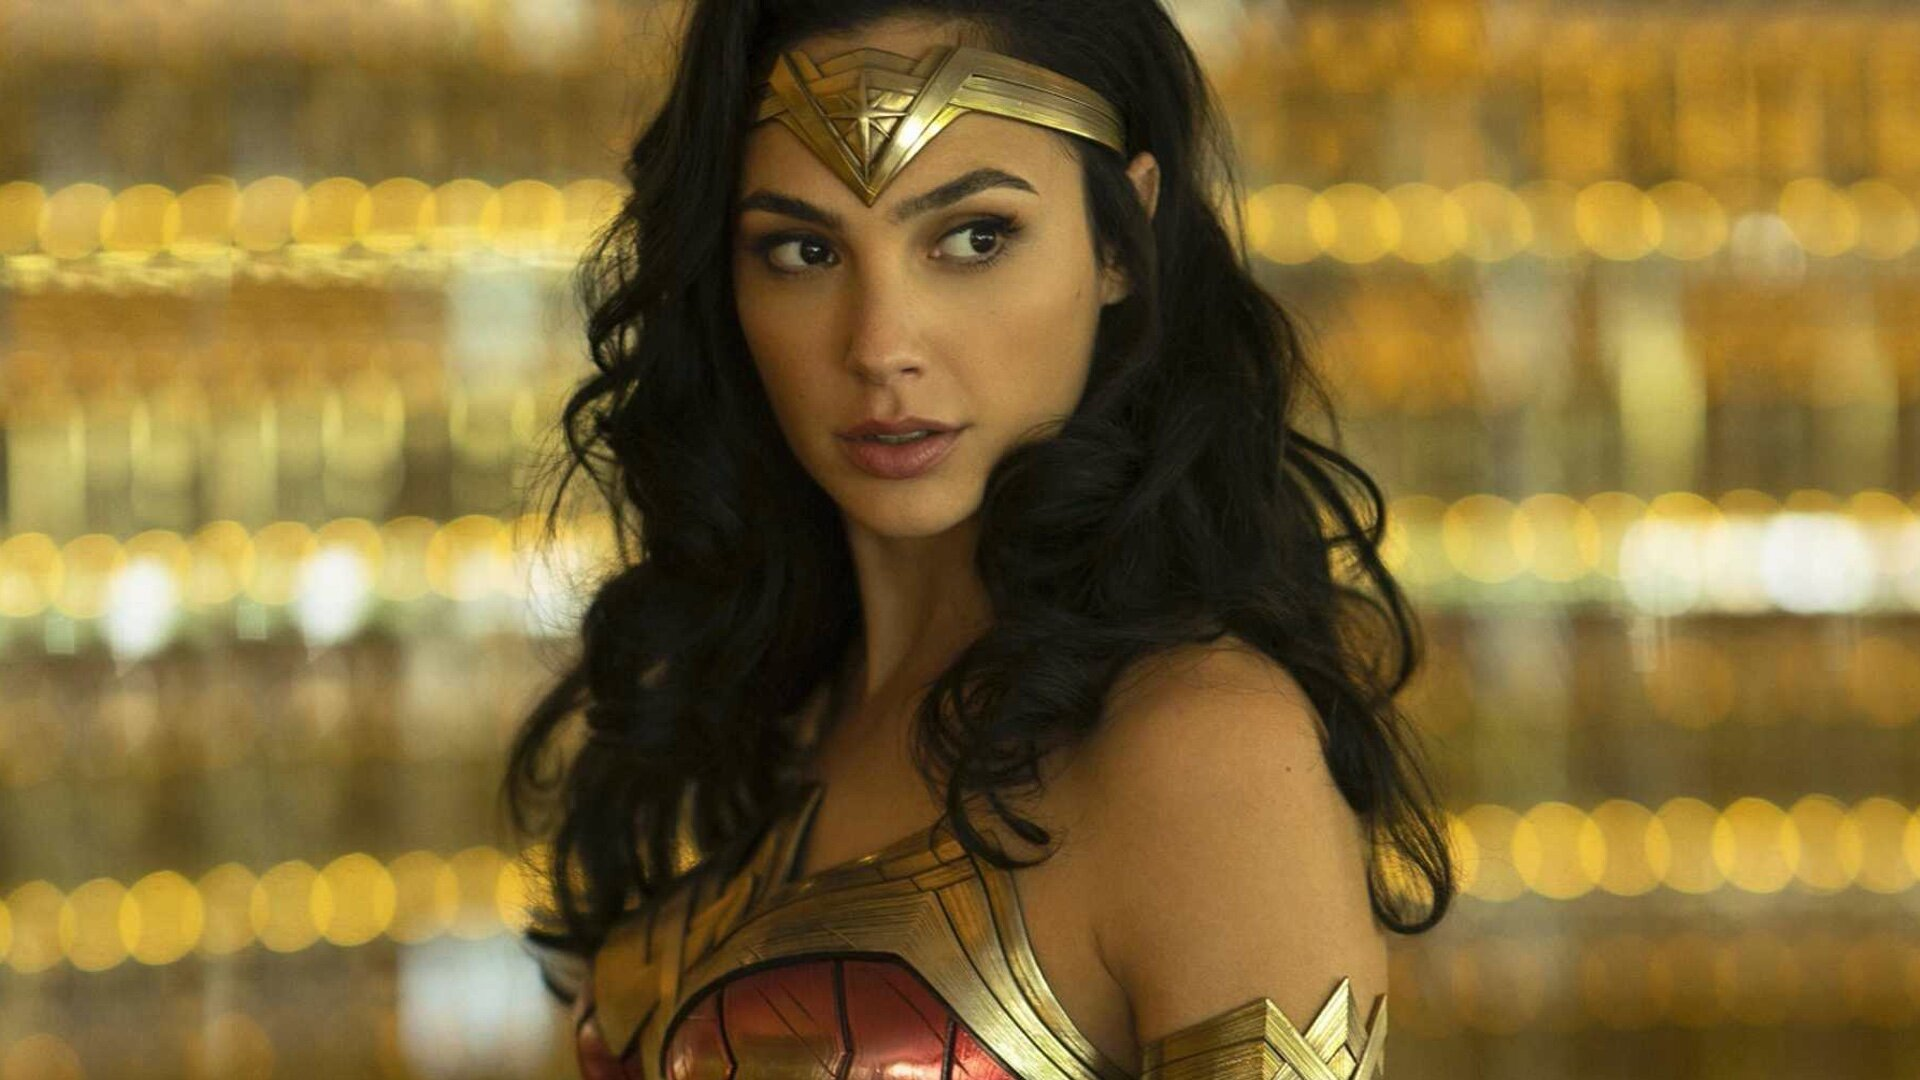 gal-gadot-and-director-patty-jenkins-are-teaming-up-again-for-cleopatra-social.jpg